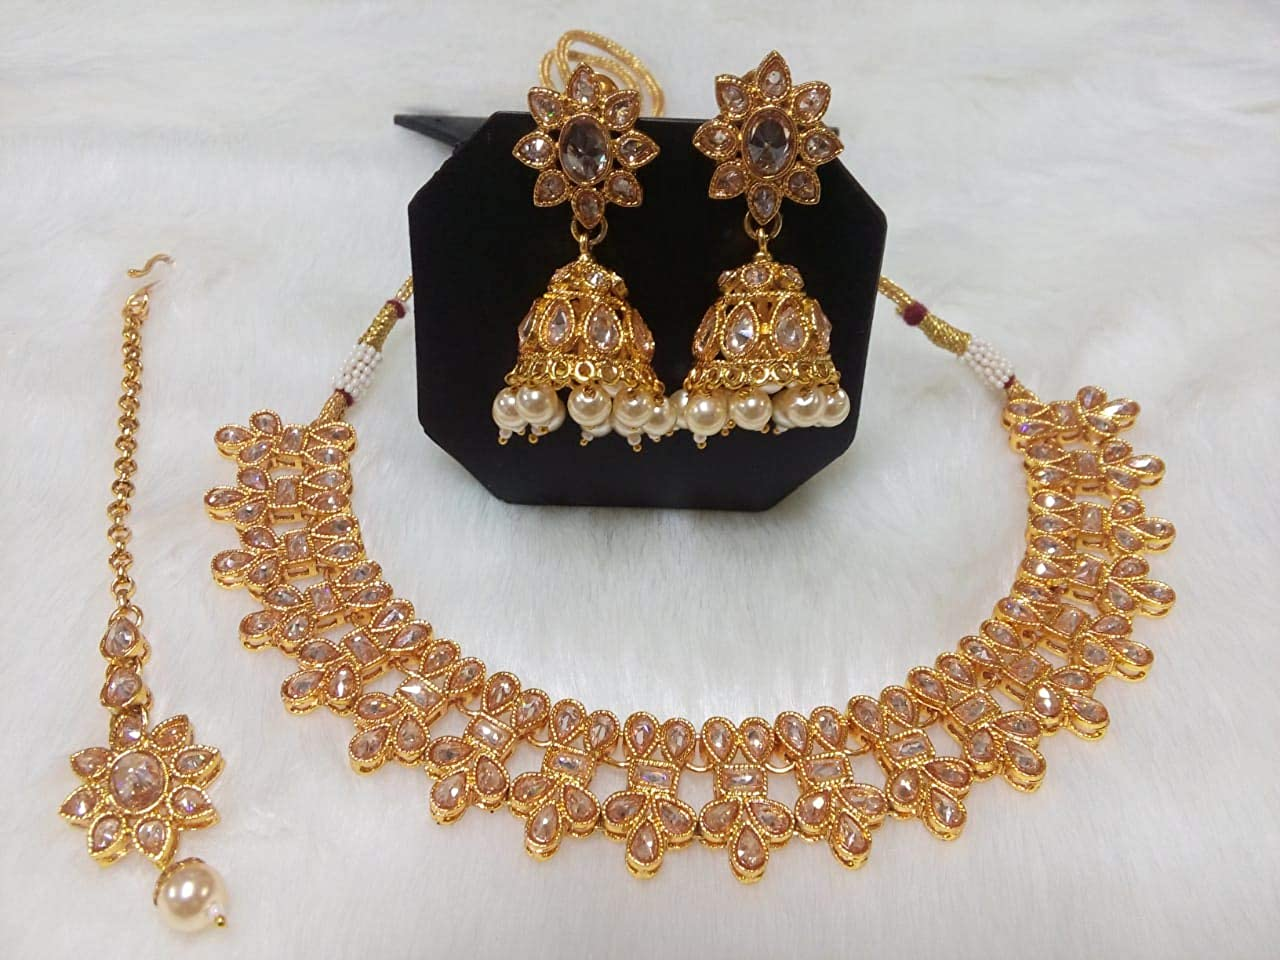 Tezshree (TJ) Indian Bollywood Jewelry Necklace Set Earring Tikka Ethnic Gold Plated